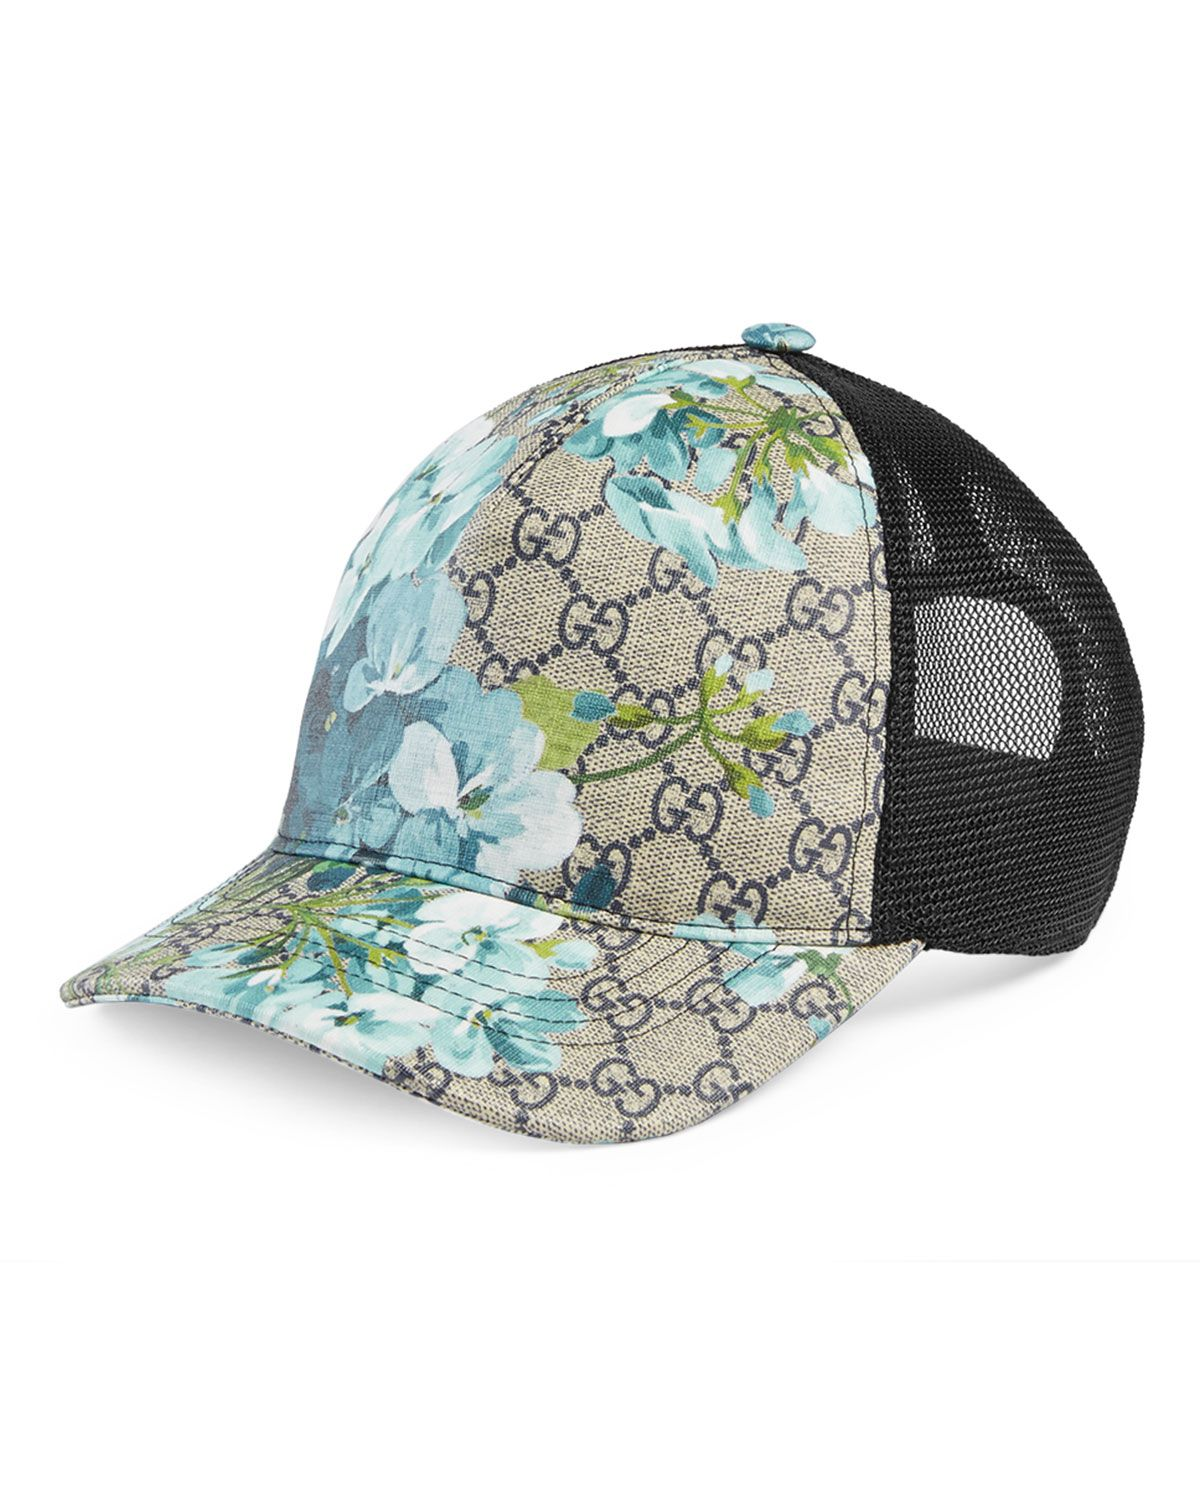 19e8933631c Gucci classic baseball cap in signature beige ebony GG supreme canvas with  blue blooms print. Made using an earth-conscious process. Mesh back.